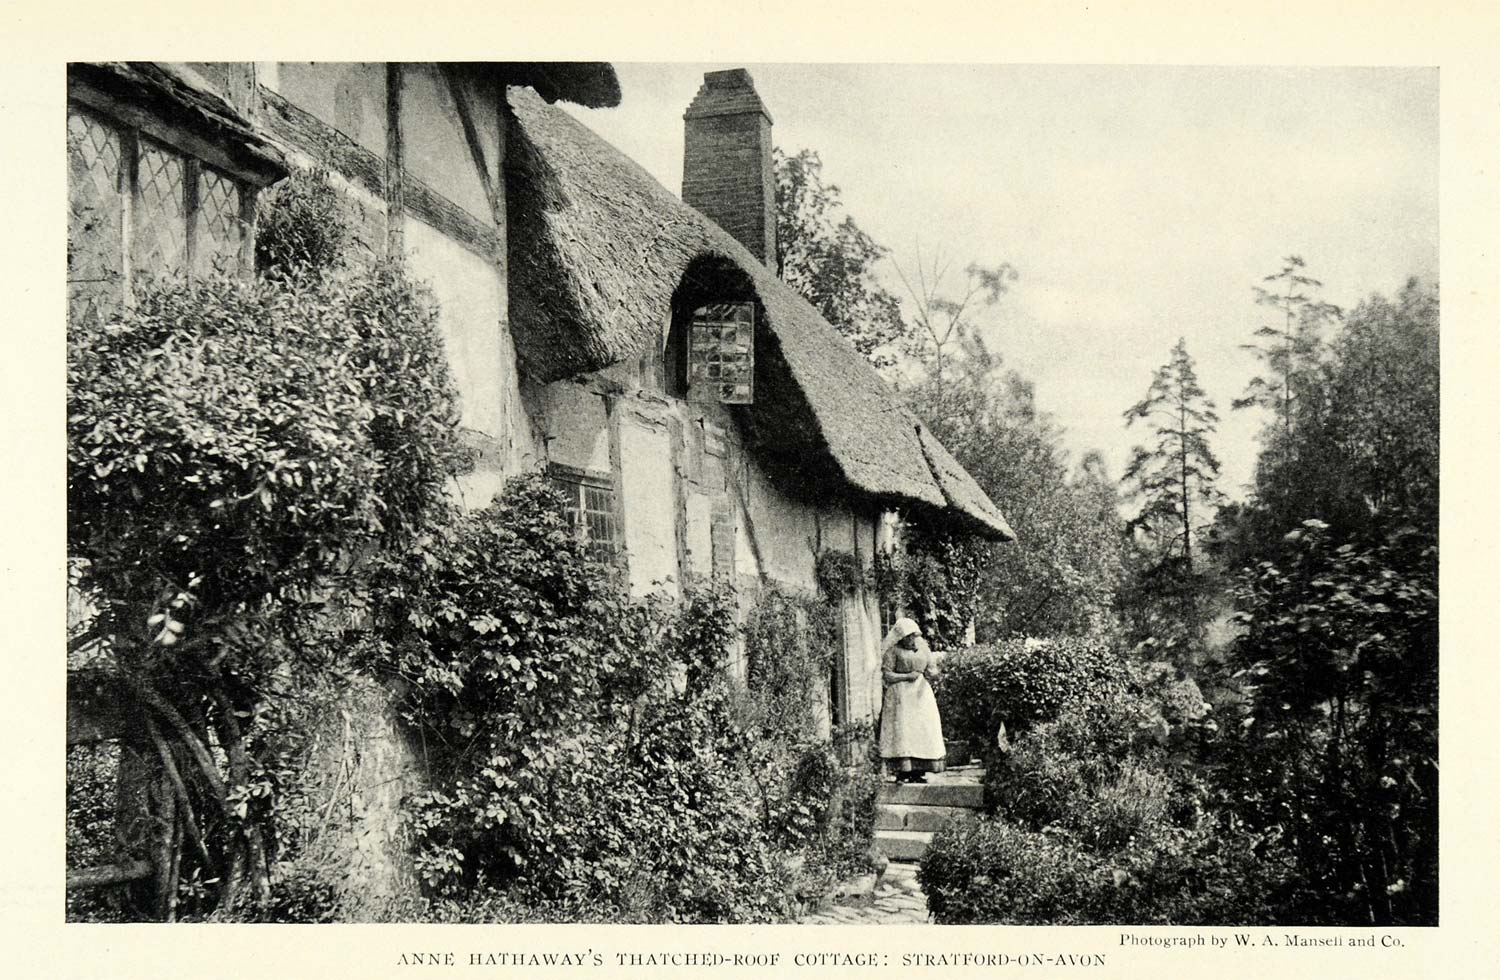 1922 Print Anne Hathaway Thatched Roof Cottage Home Stratford on Avon NGM2